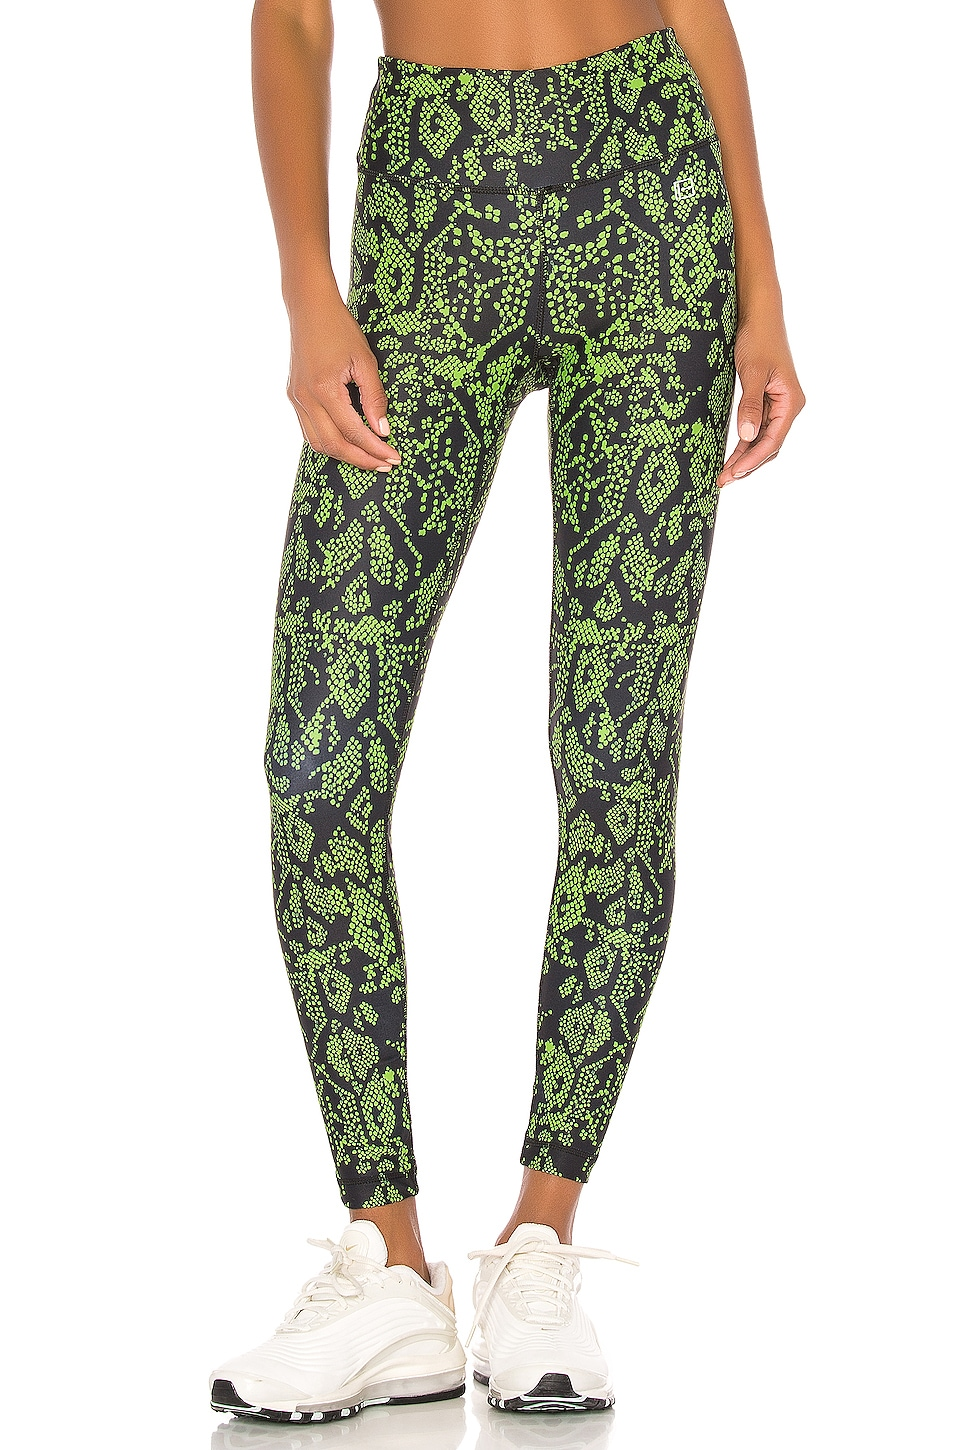 Body Language Sculpt Legging in Neon Snake